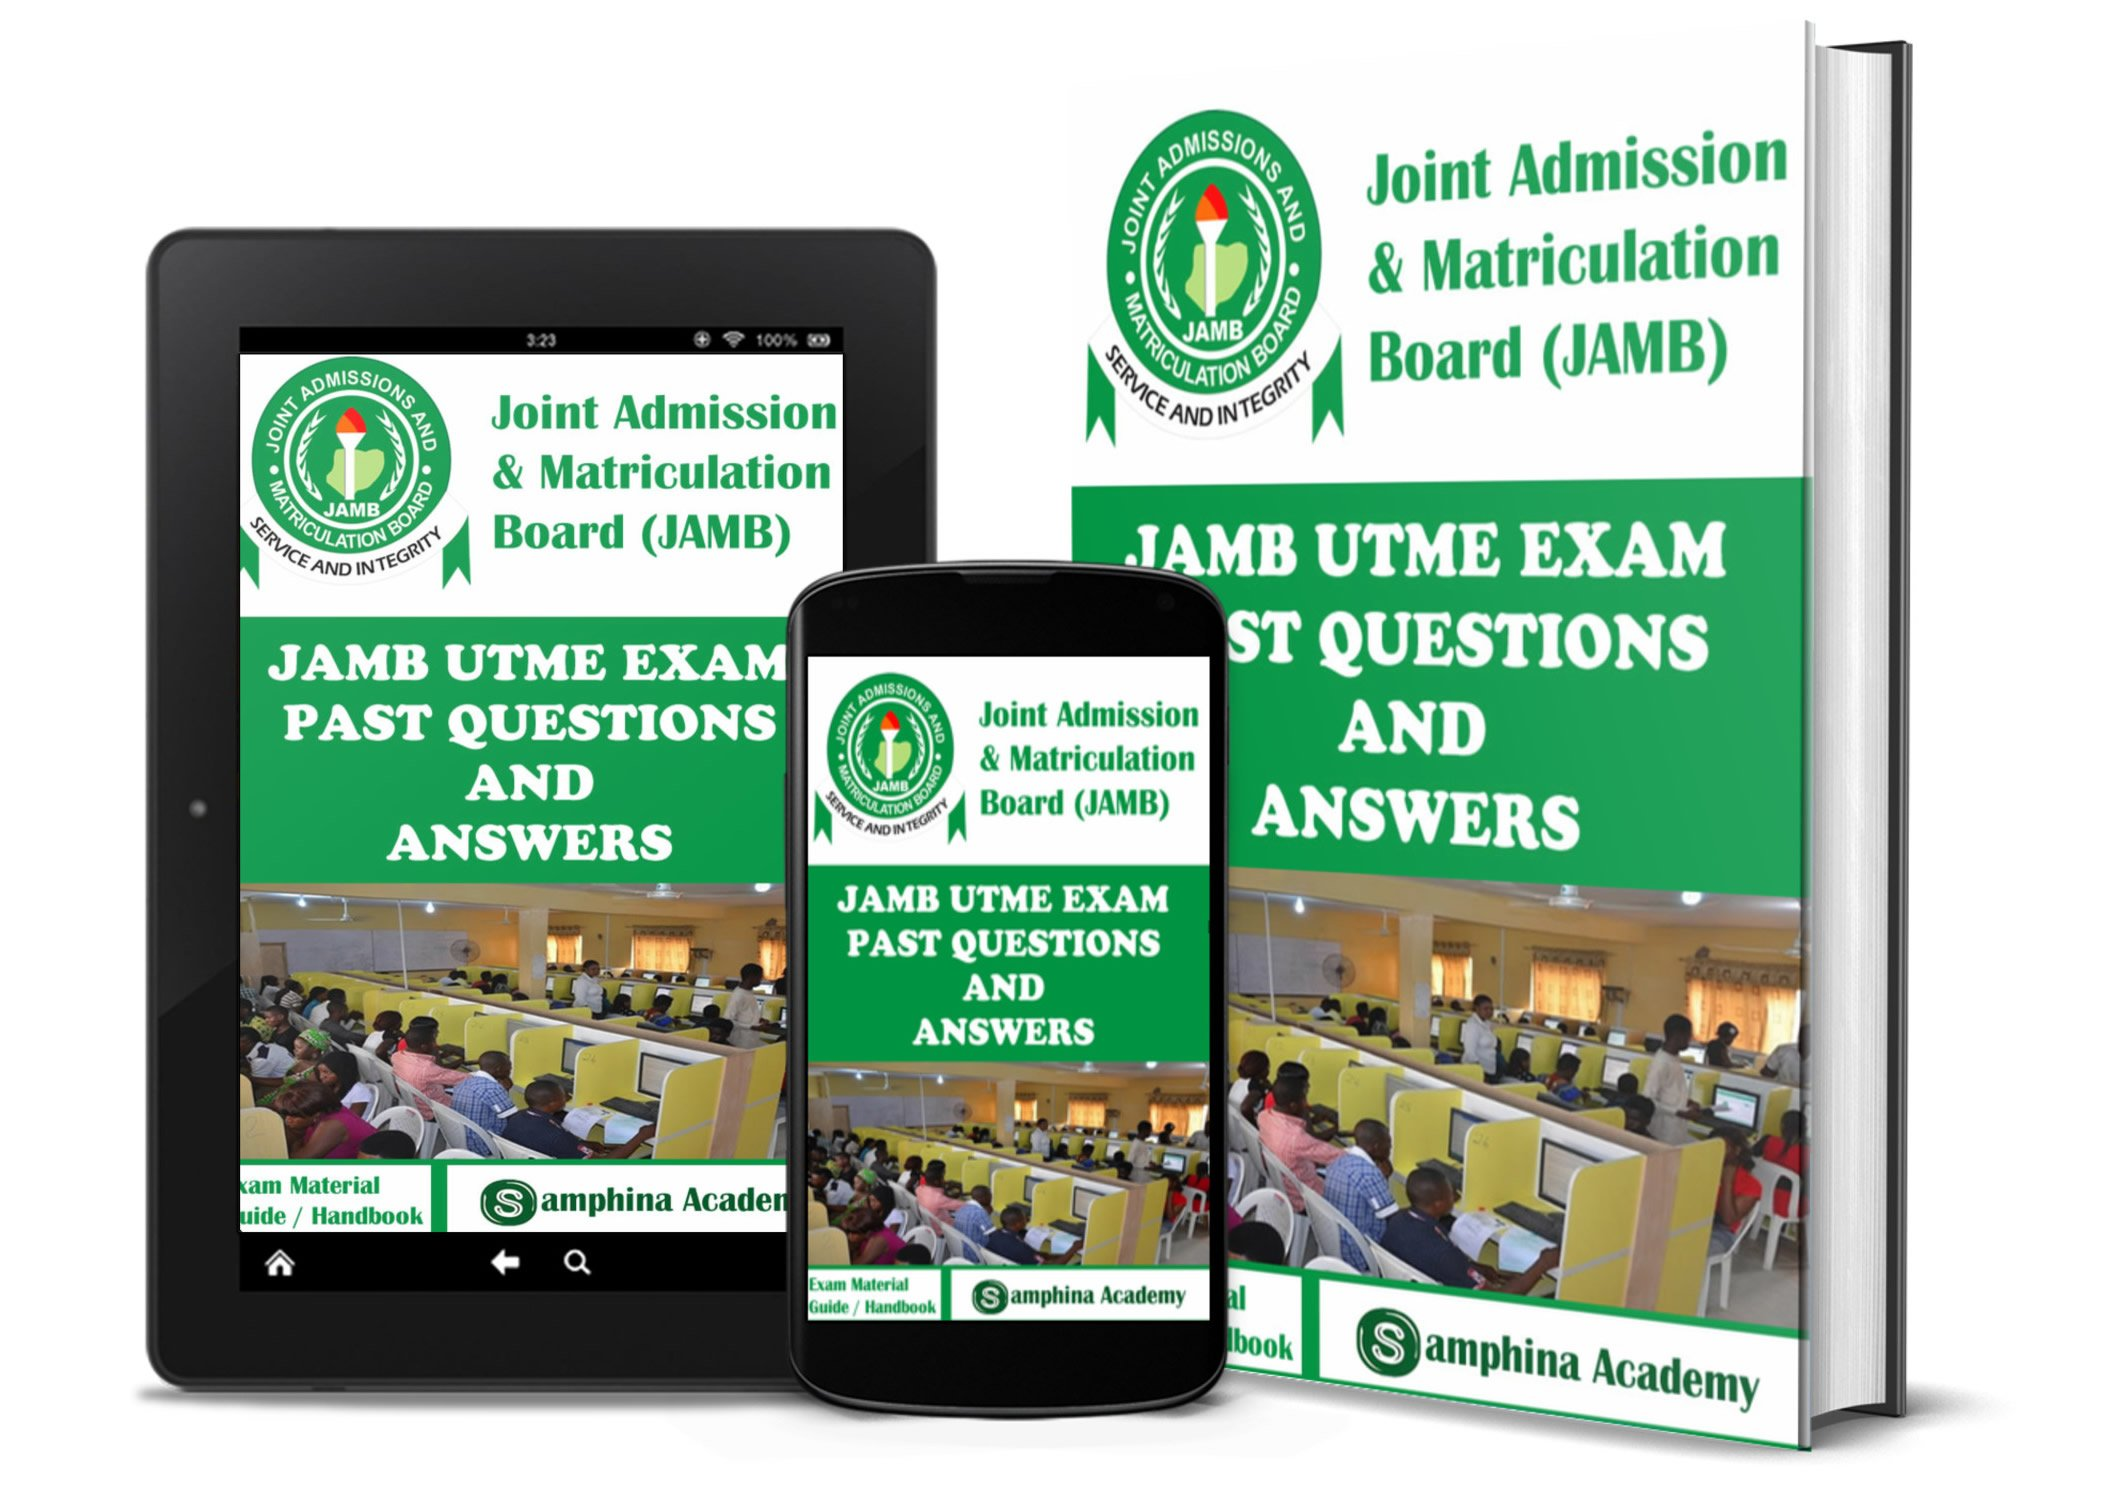 JAMB UTME Exam Past Questions and Answers